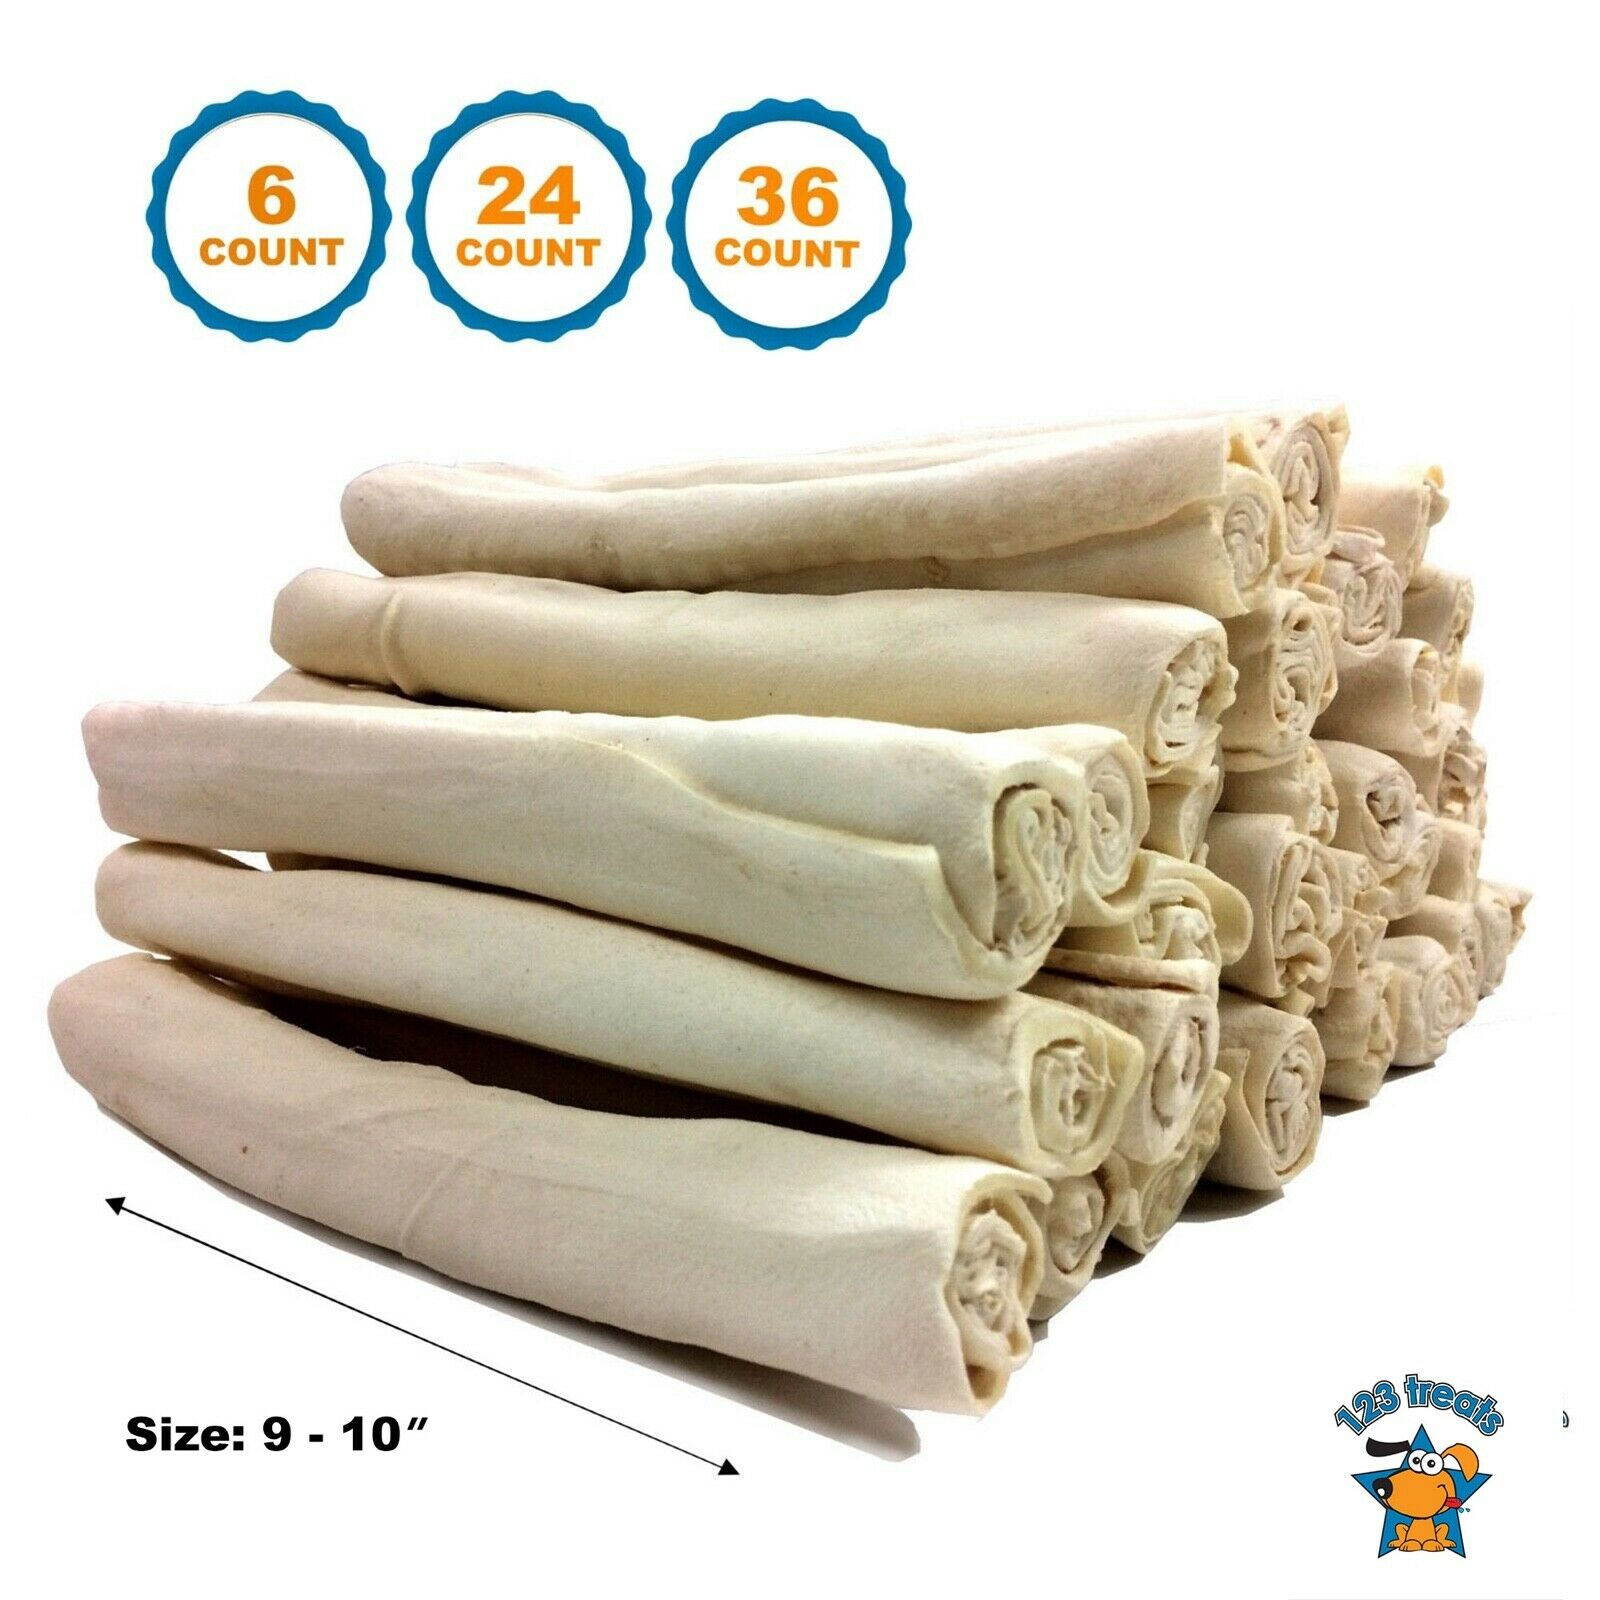 Rawhide Rolls dog chews 9 - 10 inches (6, 24, or 36 Count)| All natural chews for dogs